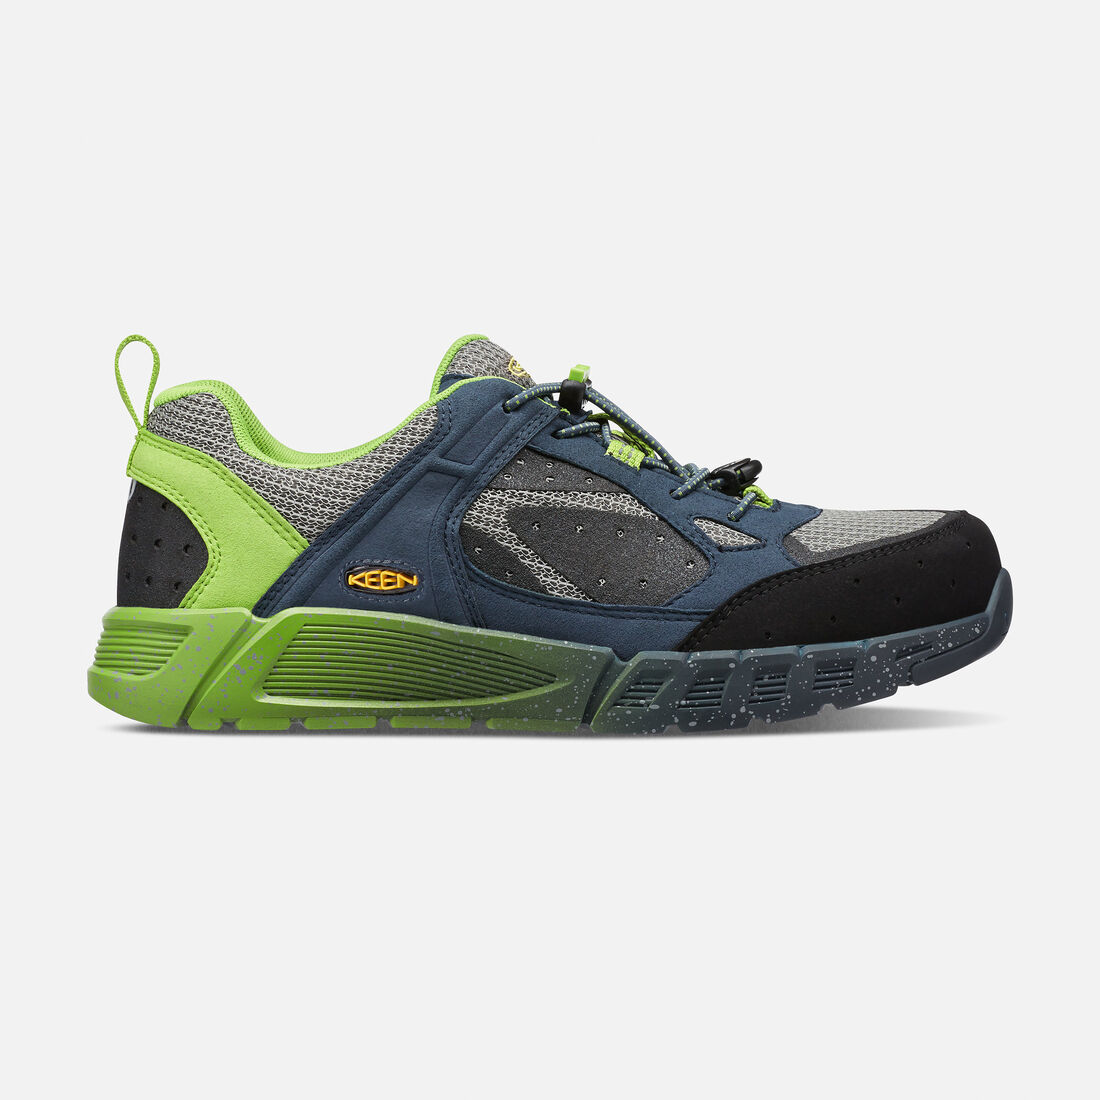 Men's CSA Raleigh (Aluminum Toe) in Neutral Gray/Greenery - large view.